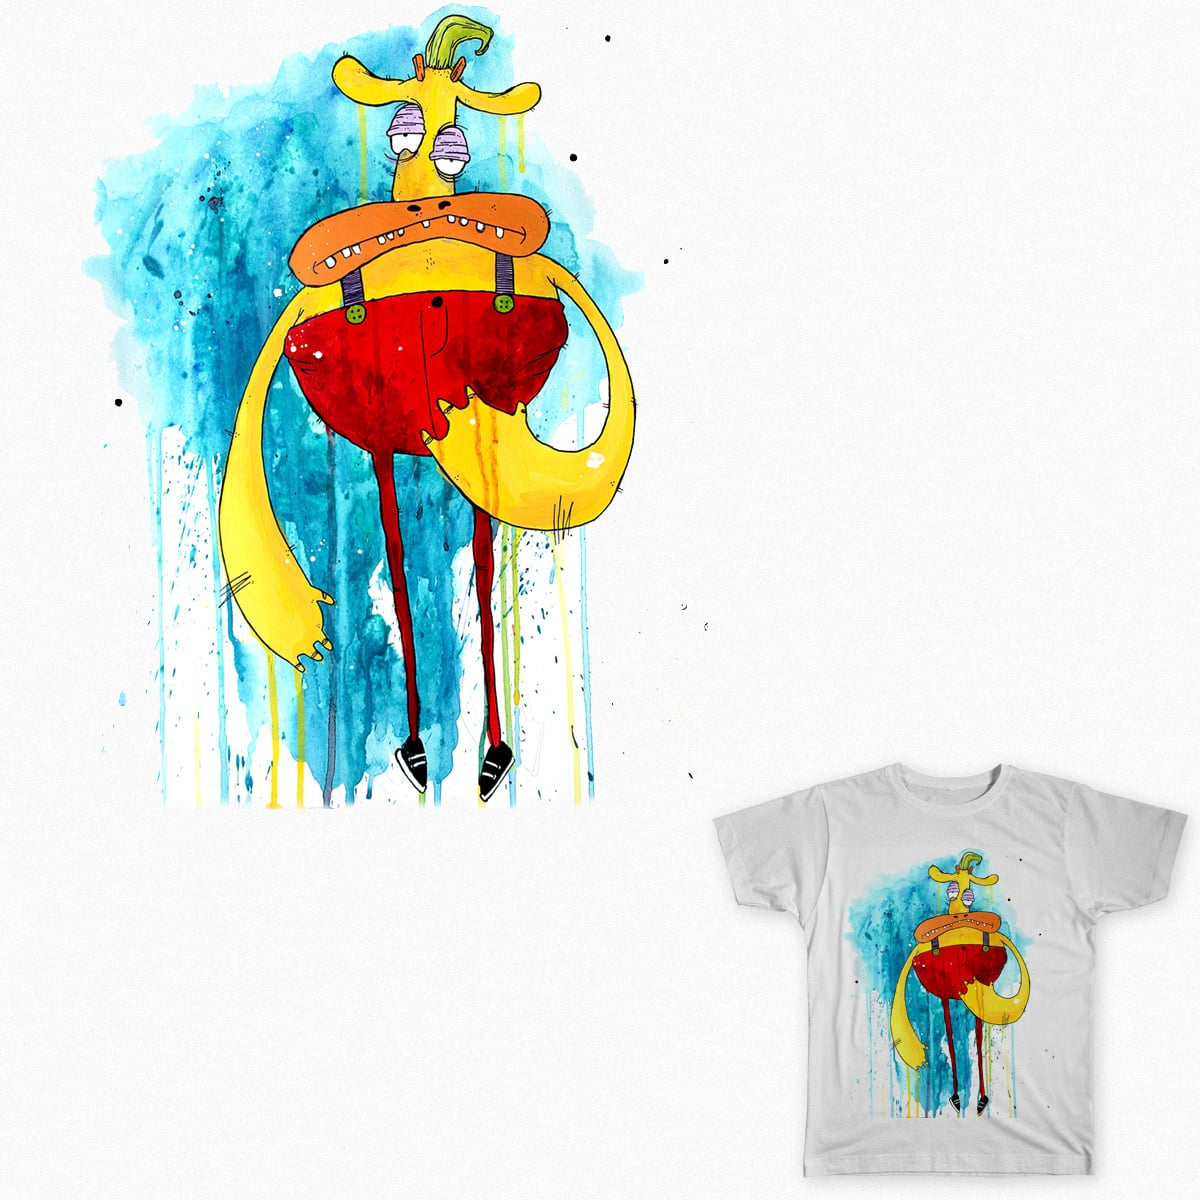 Heffer by jessieshungry on Threadless